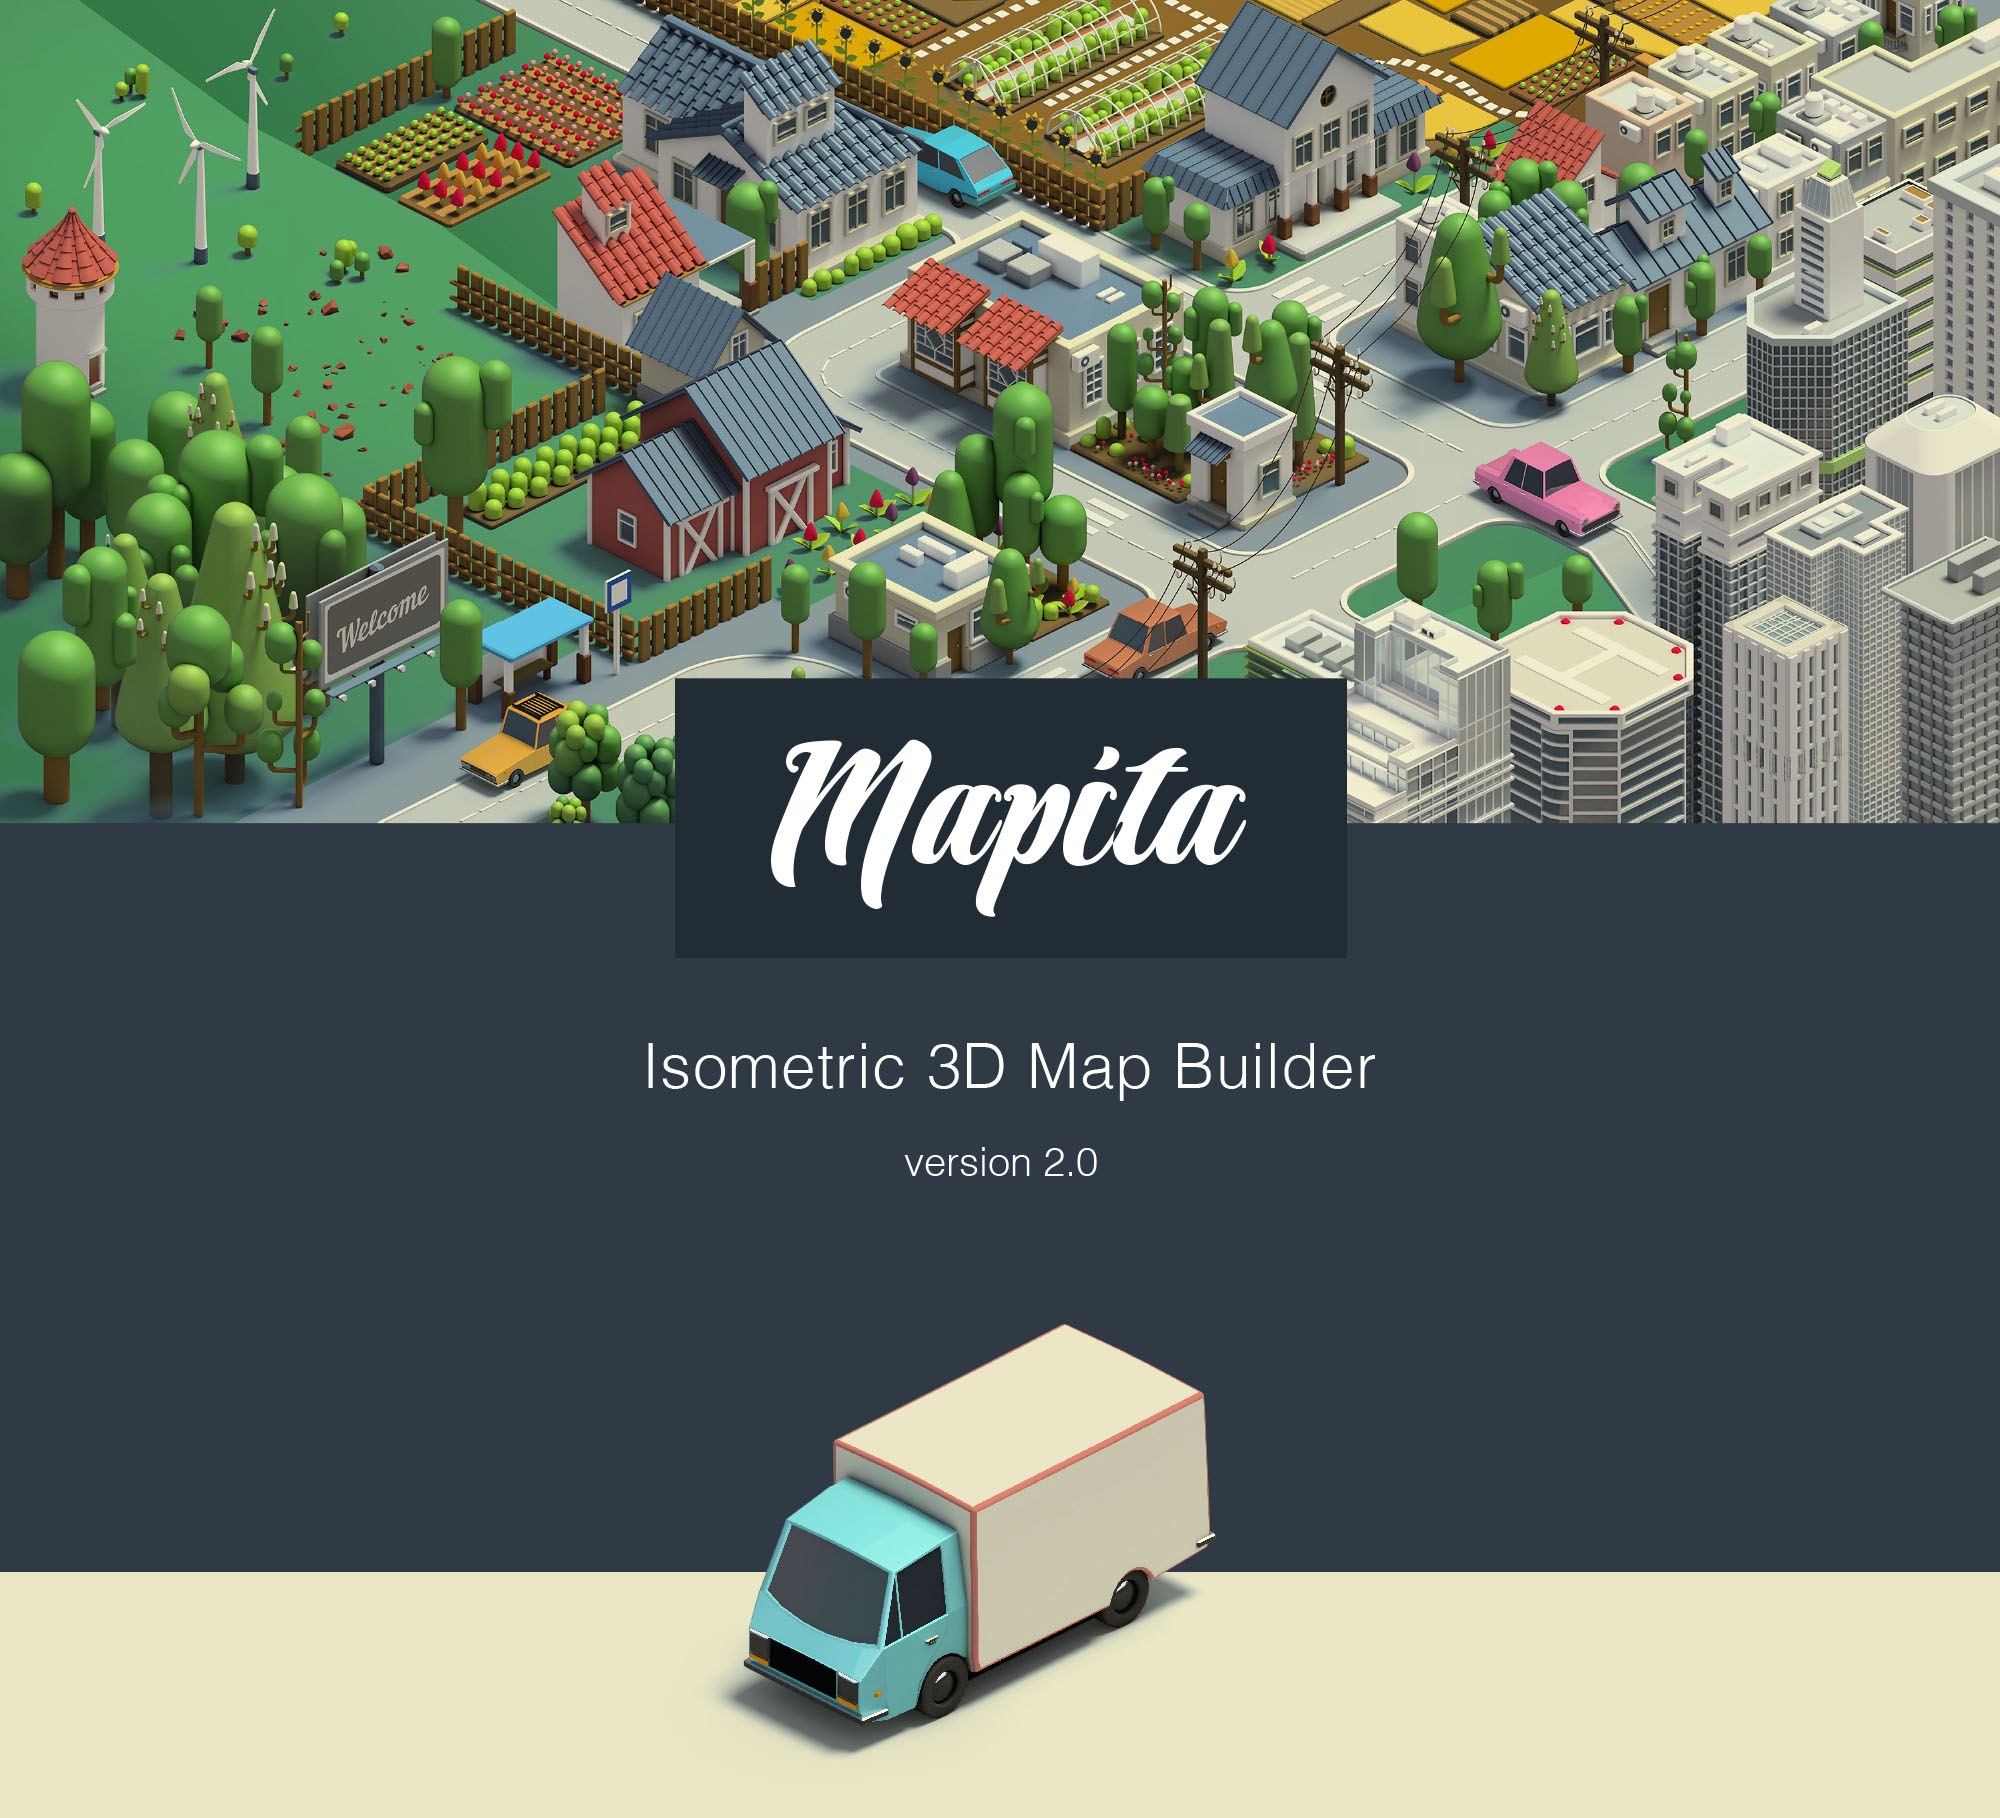 Mapita Isometric 3D Map Builder